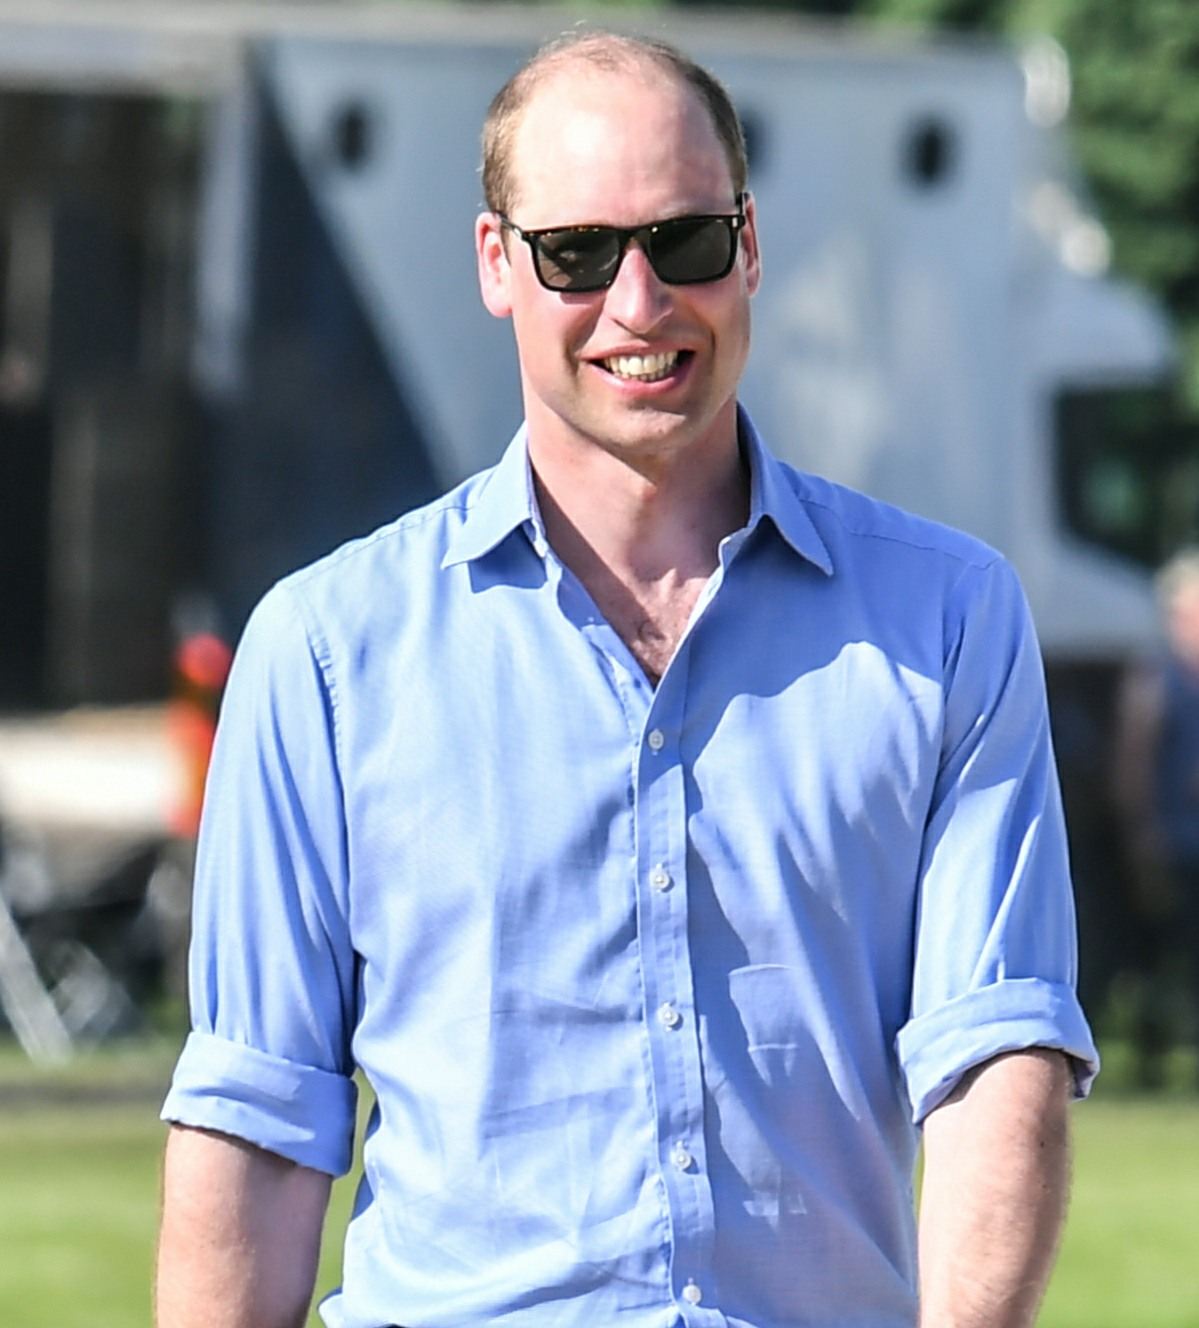 Prince William, Duke of Cambridge at the Maserati Royal Charity Polo Trophy 2018 at Beaufort Polo Club